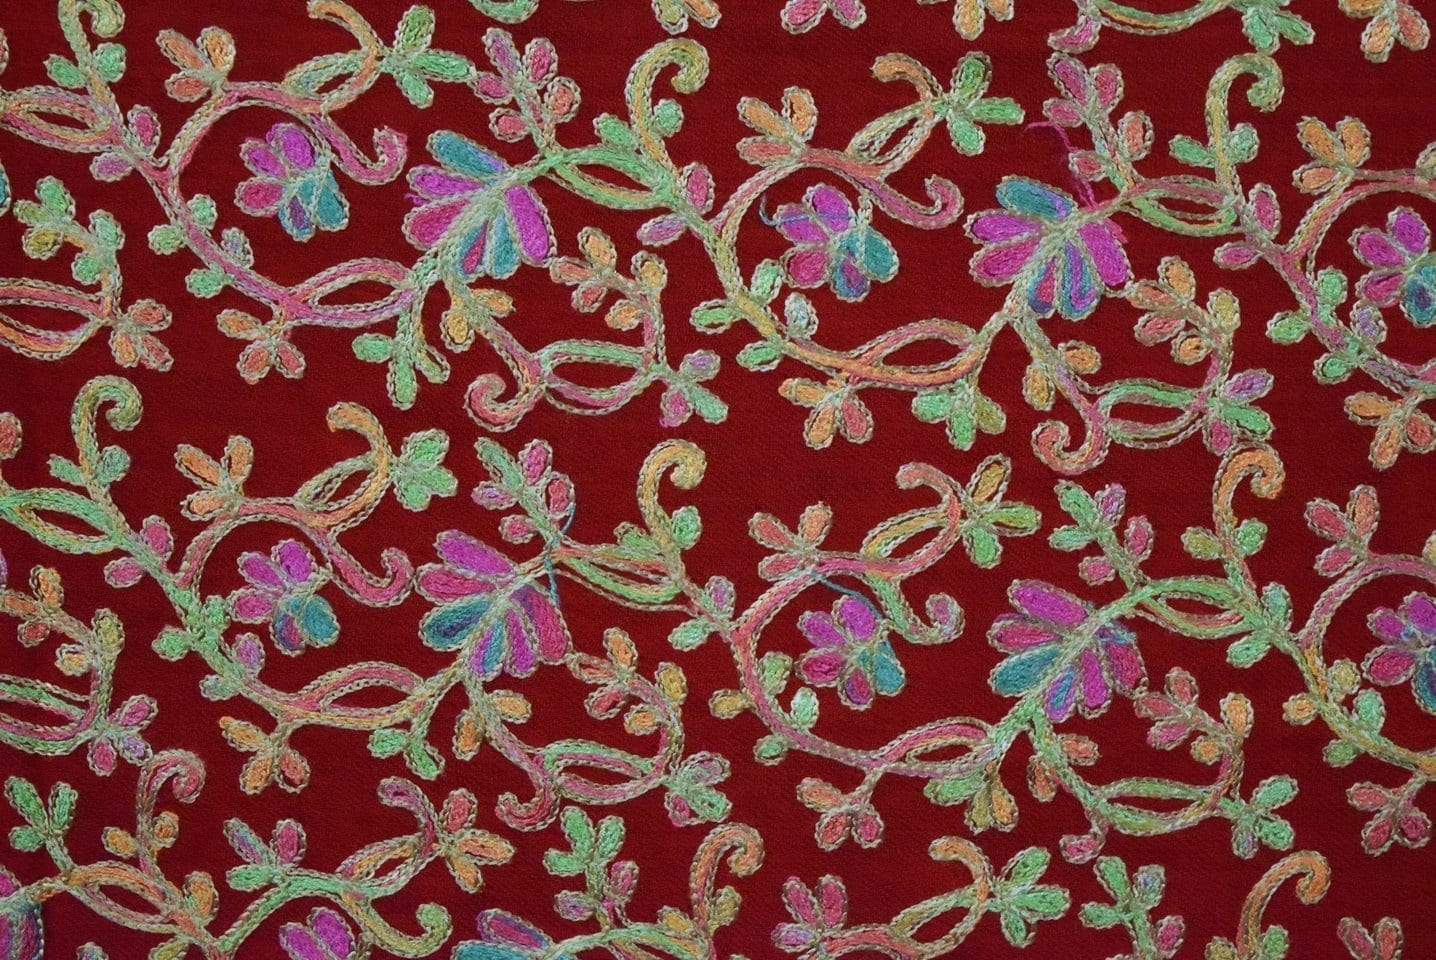 Red Bridal Kashmiri Shawl pure wool Pashmina all over embroidery C0641 3